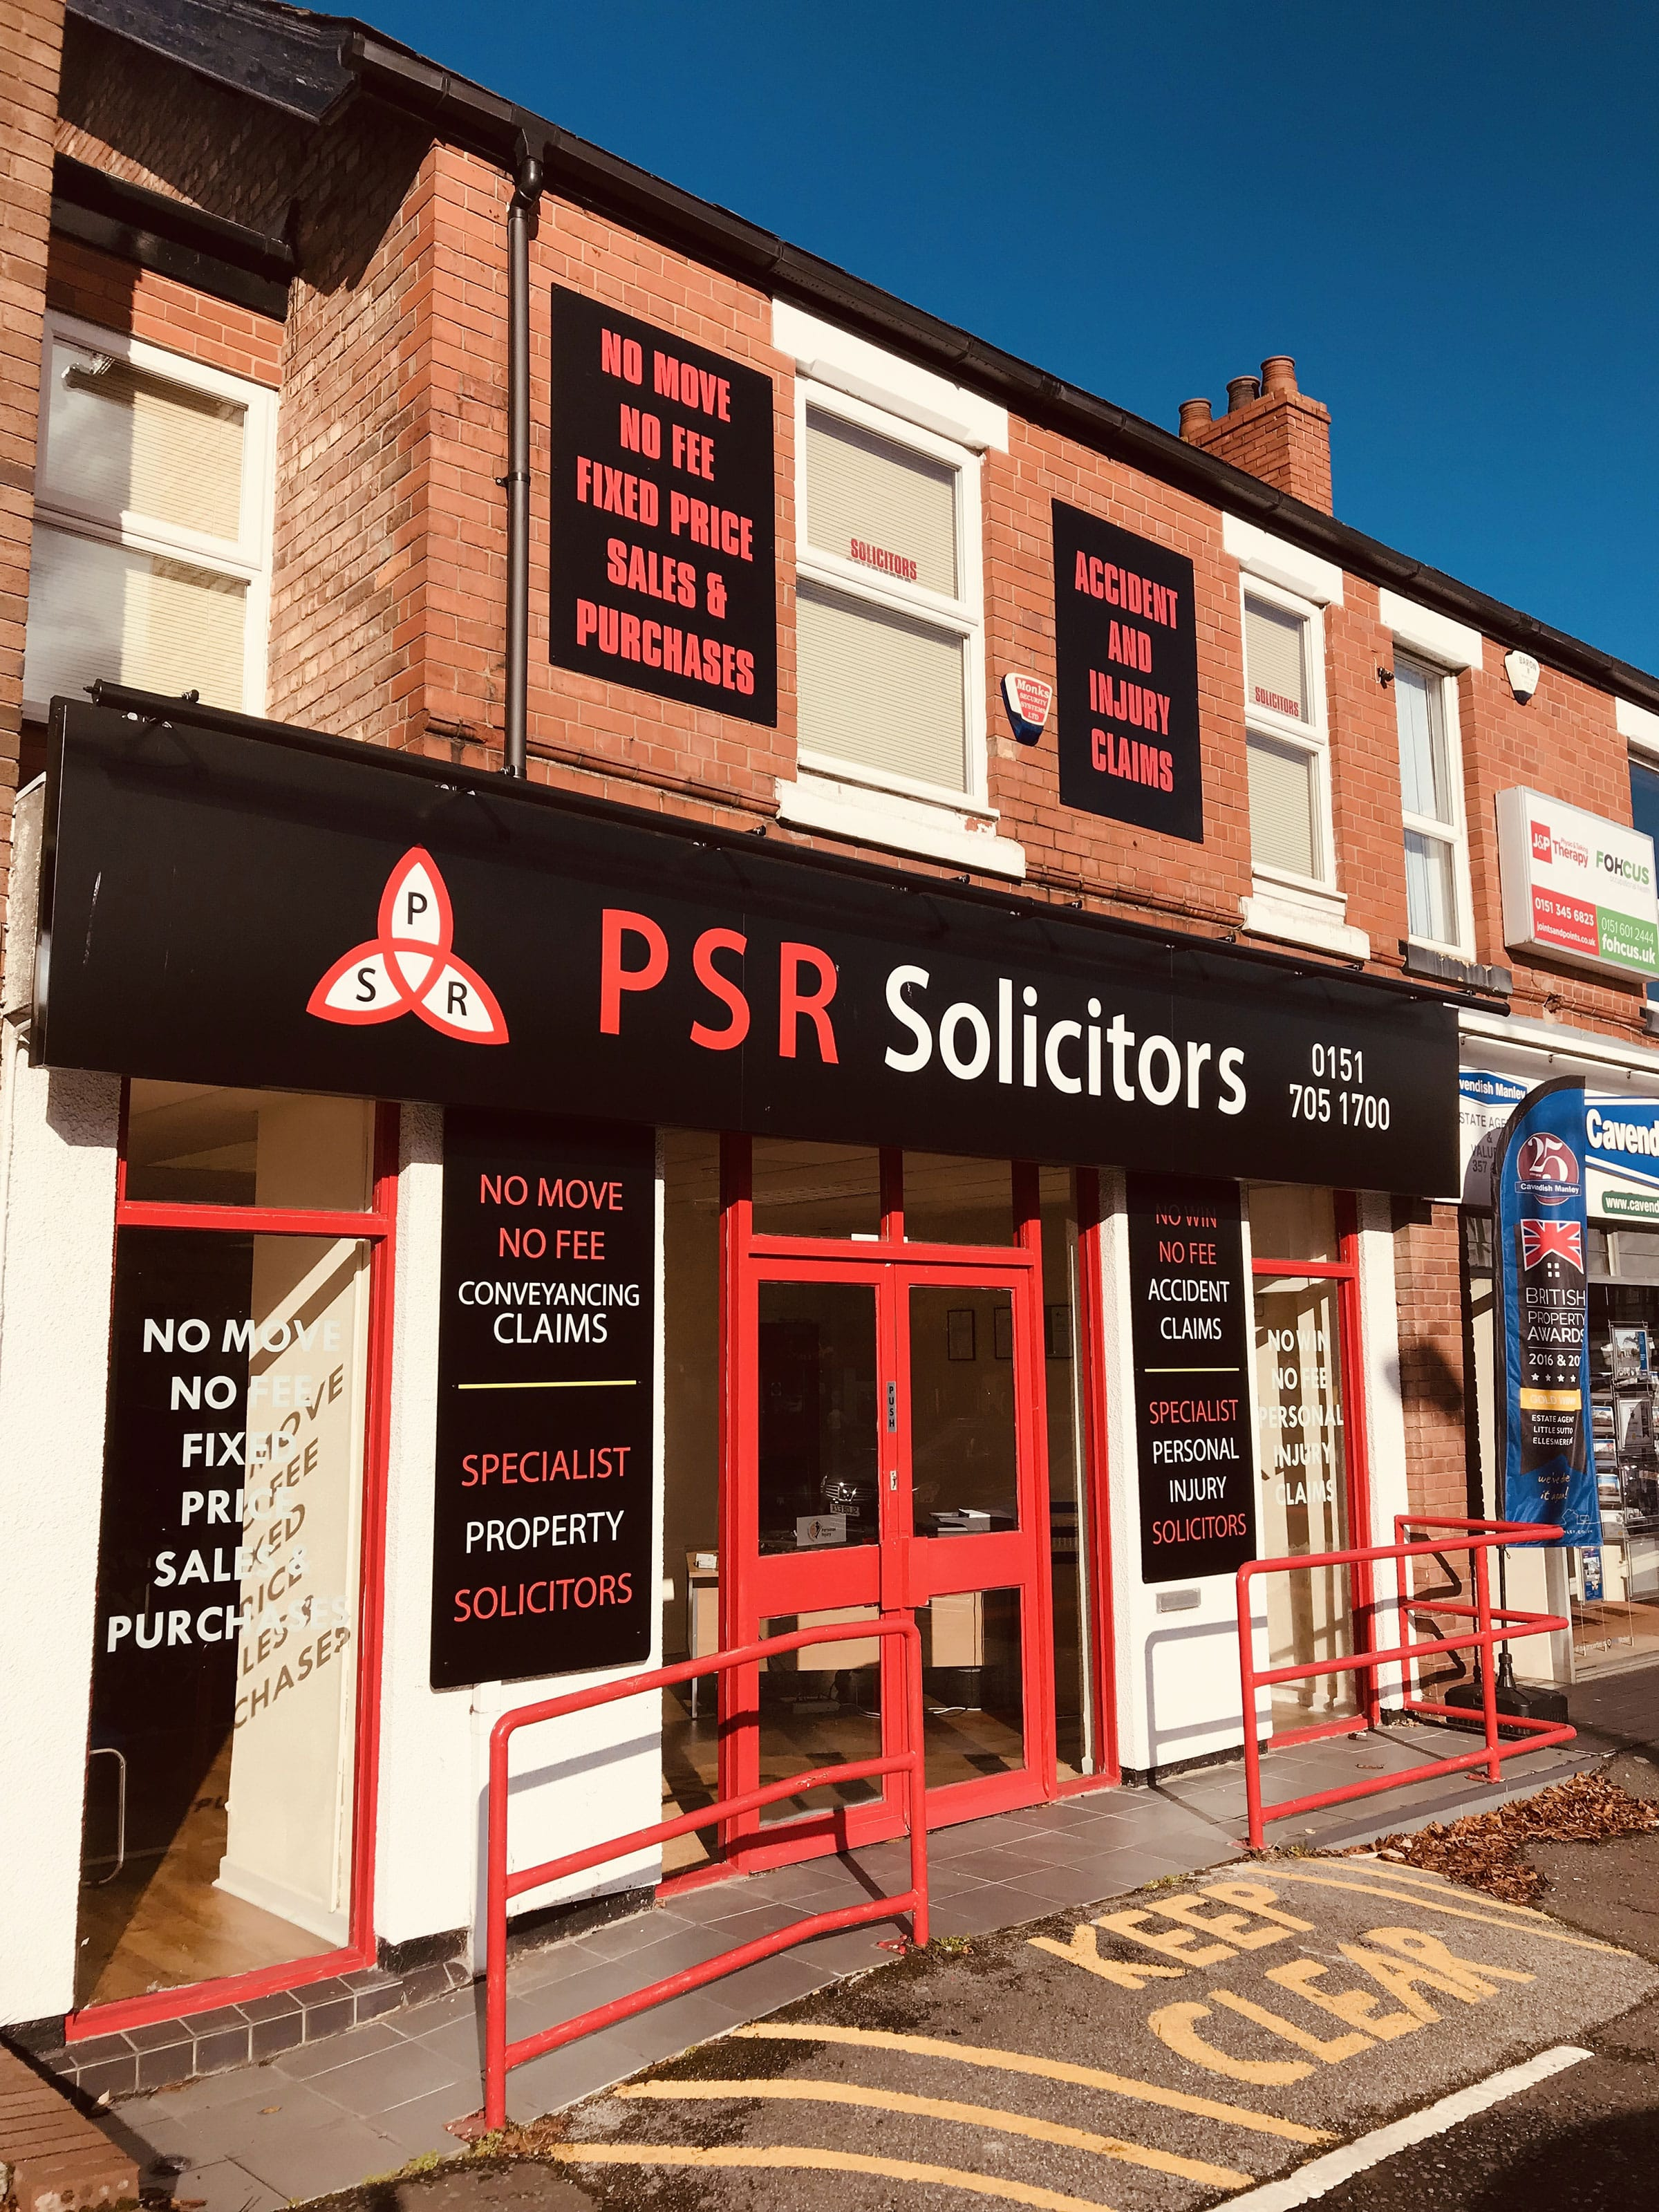 PSR Solicitors in Ellesmere Port